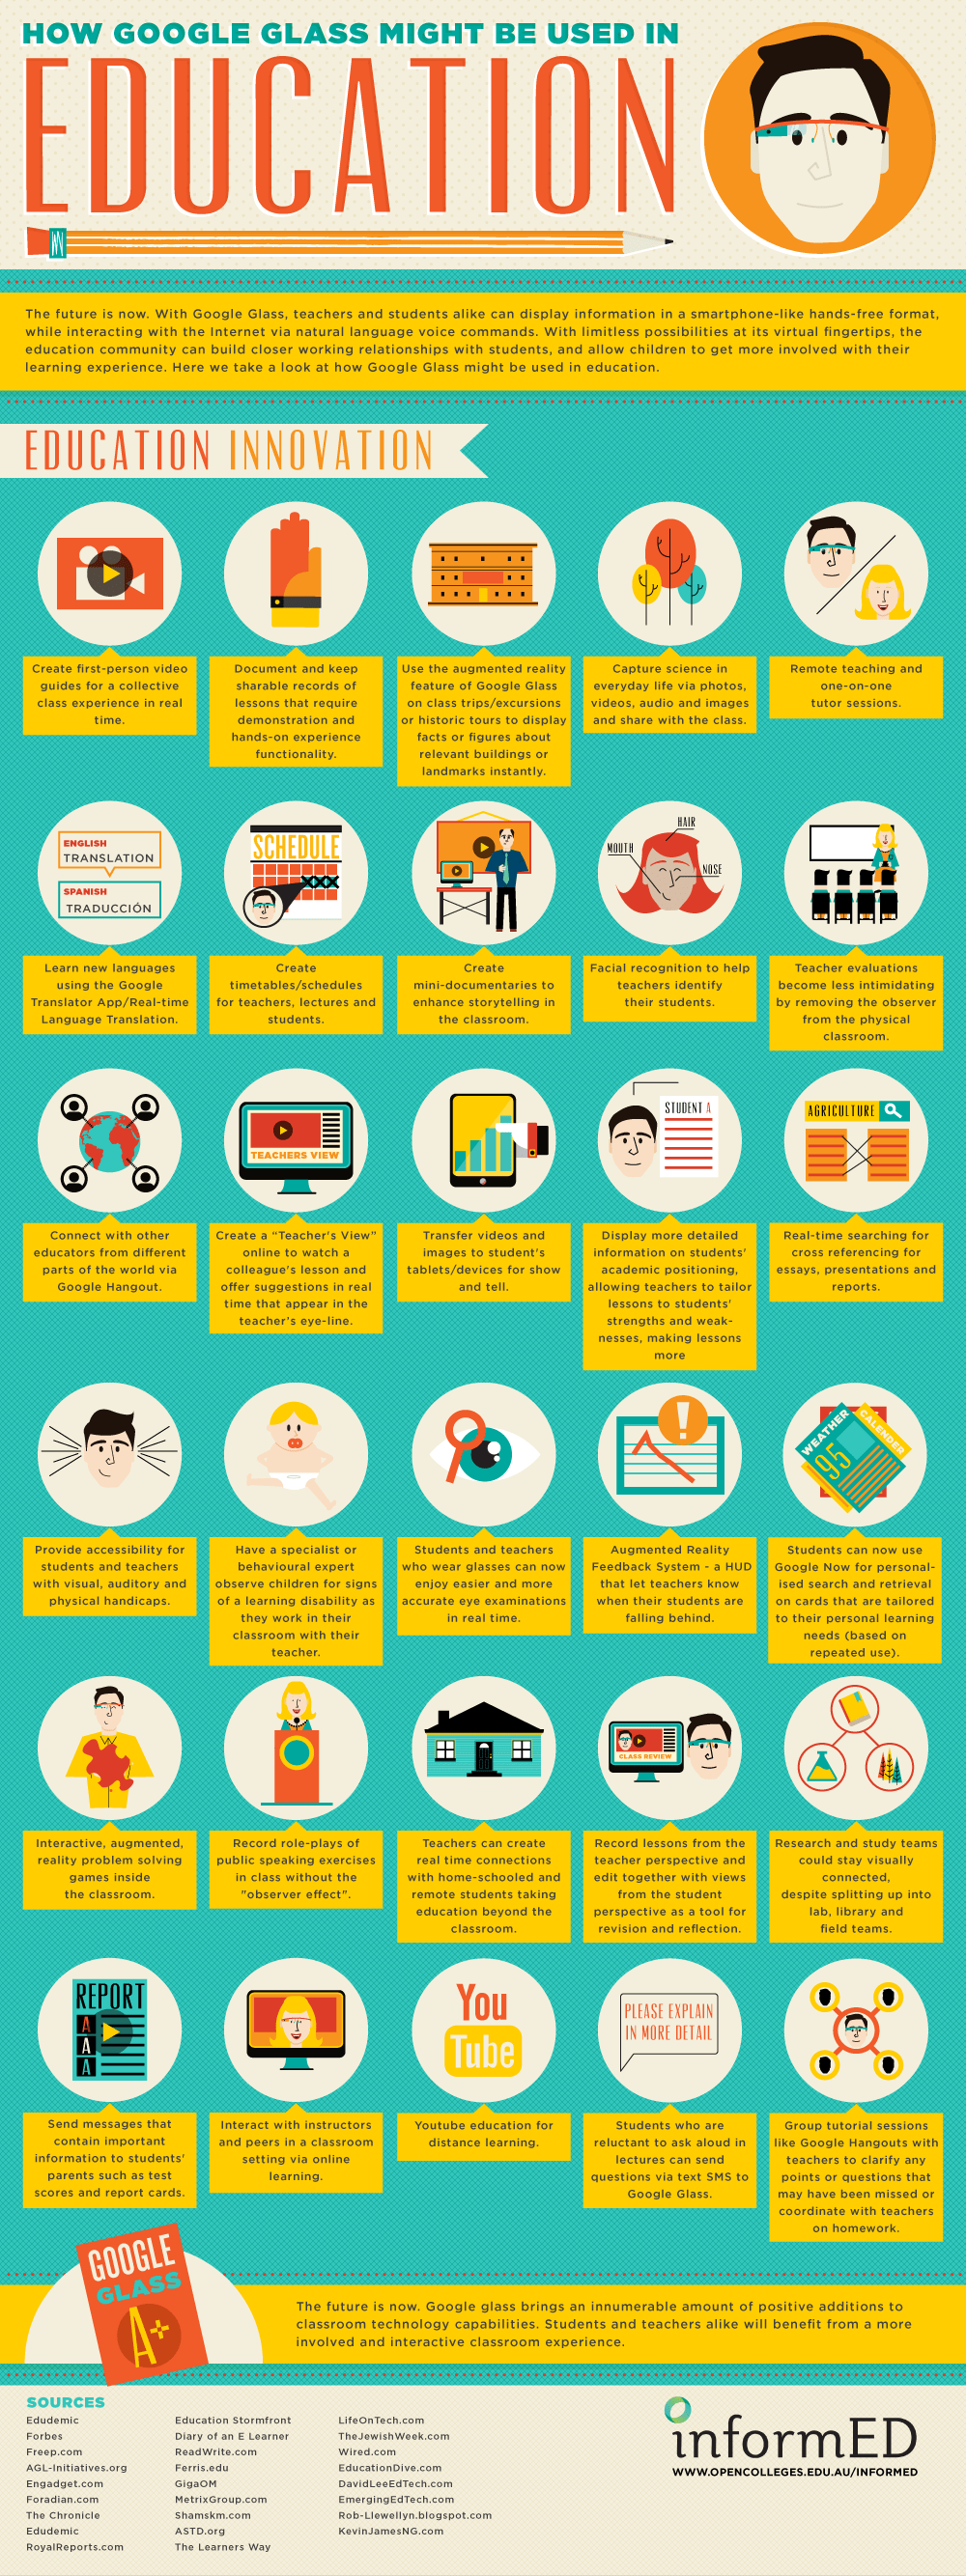 google glass in education infographic